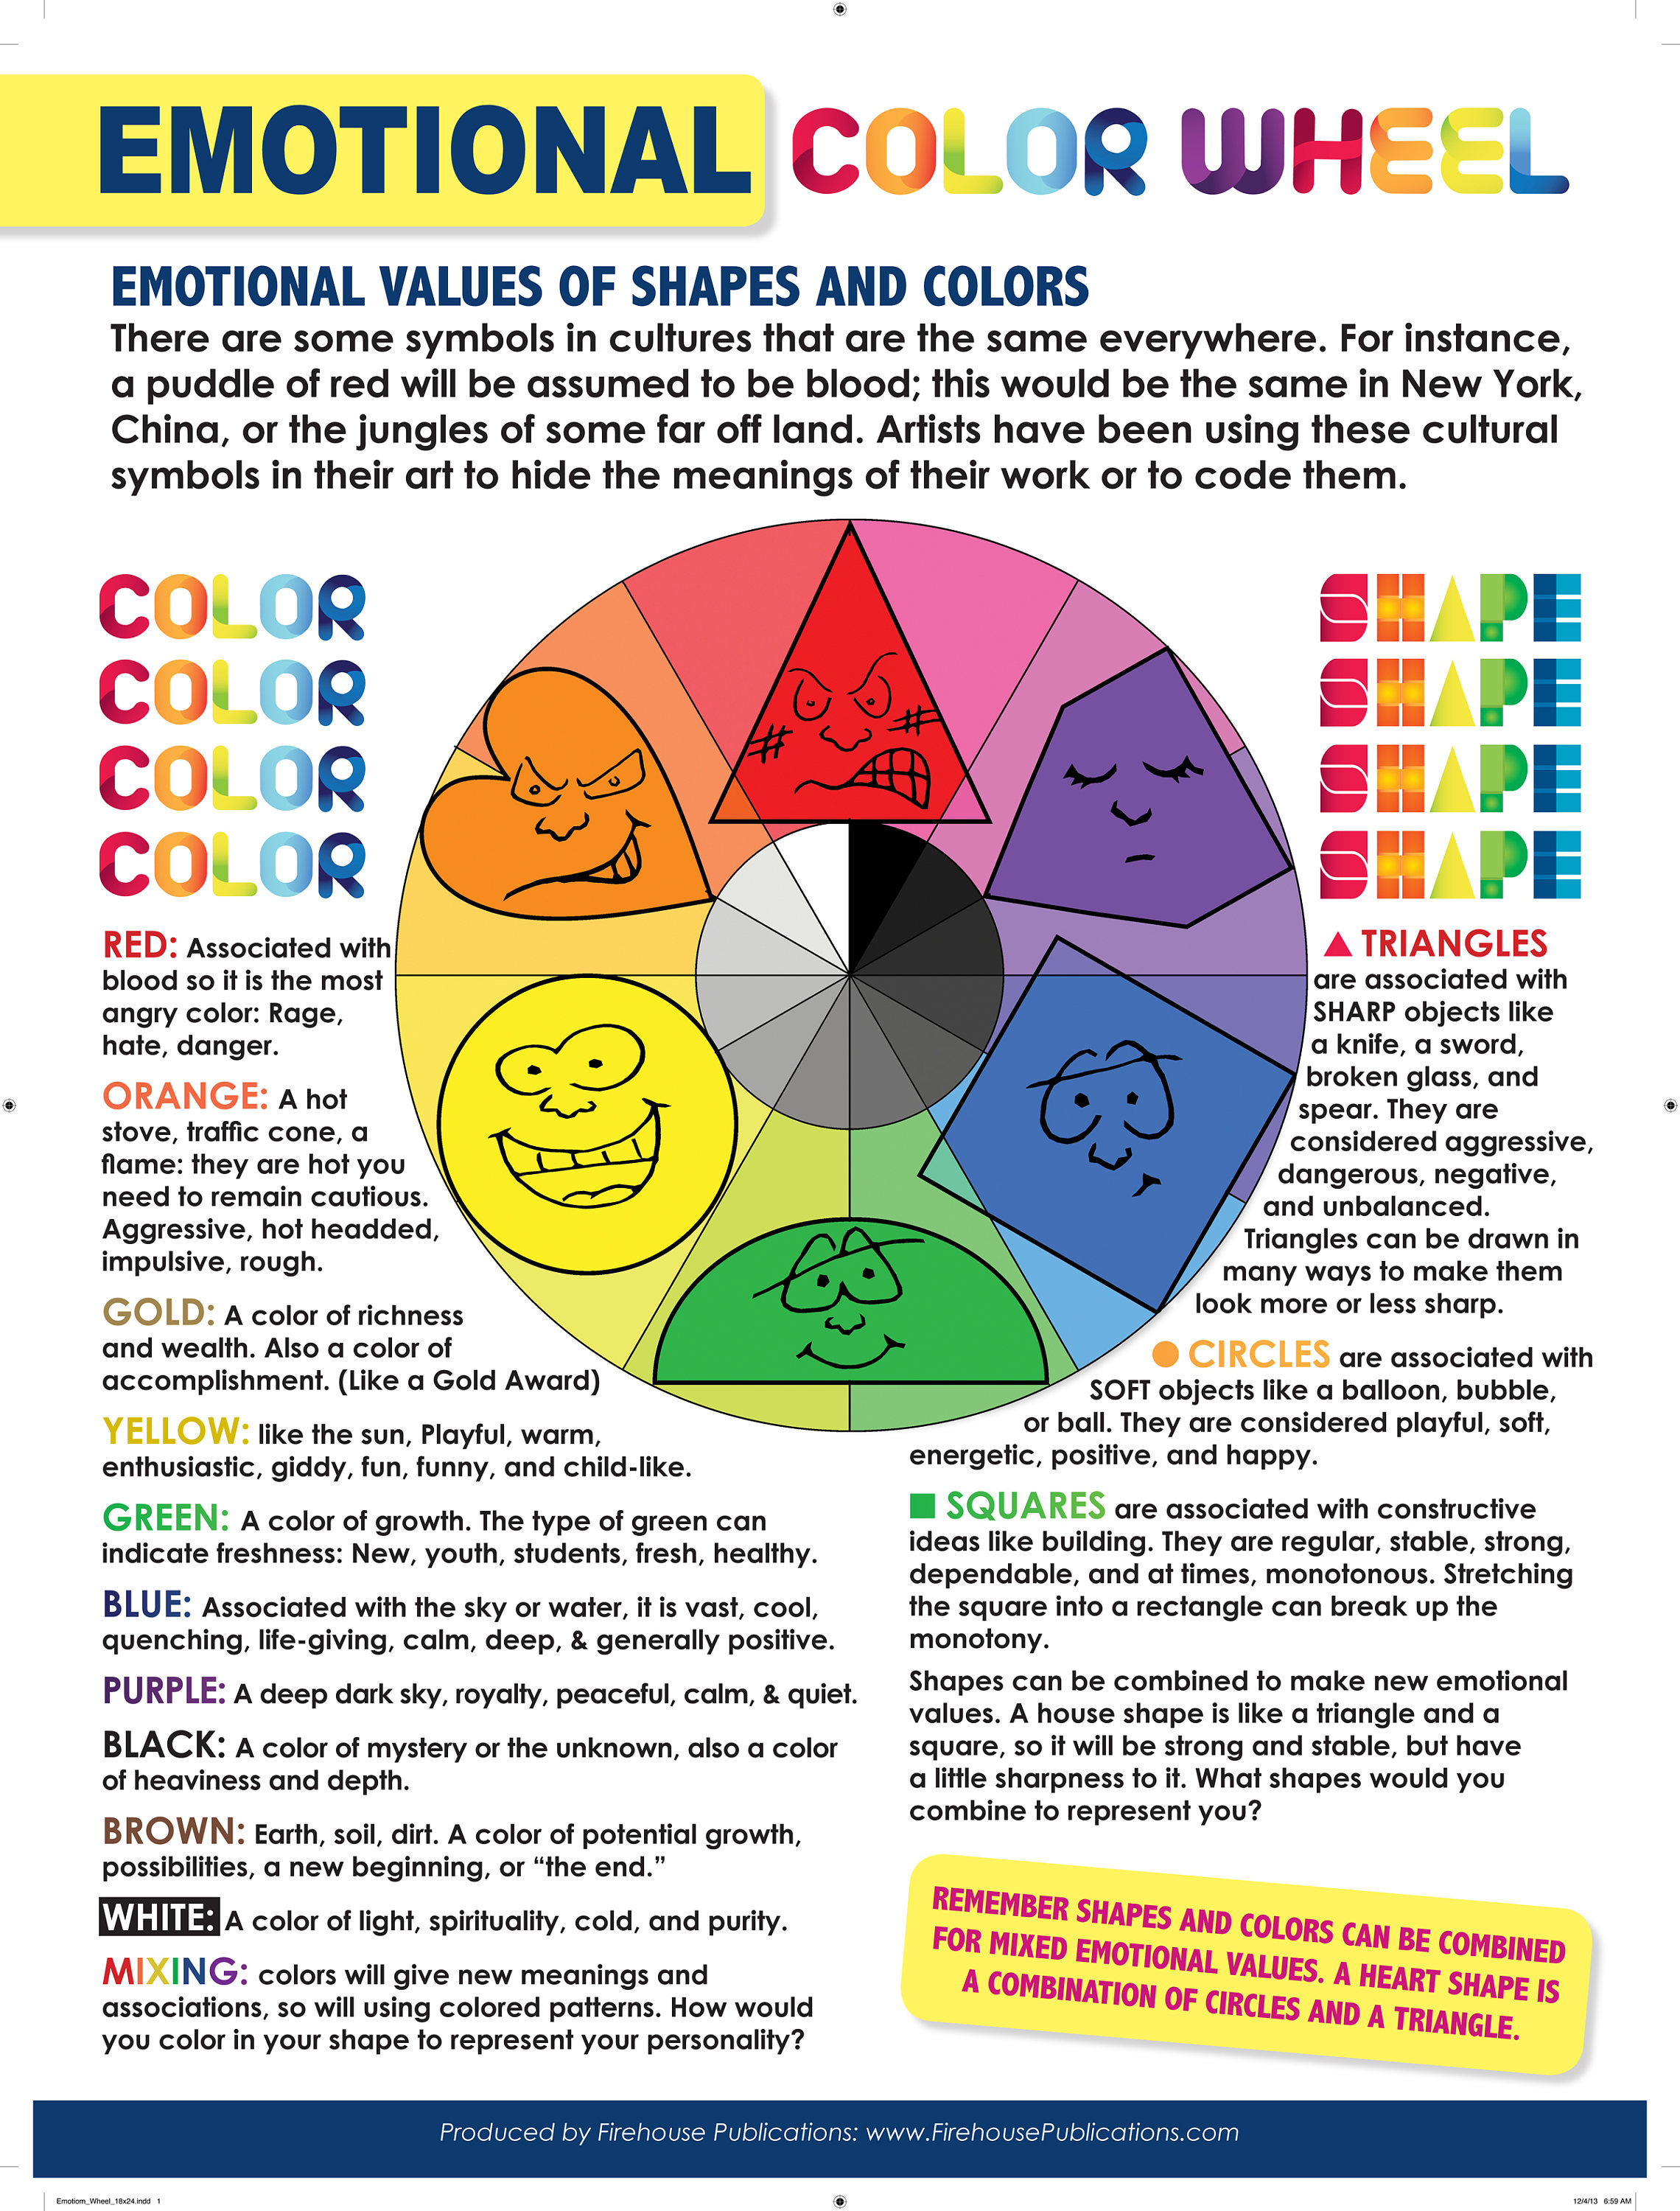 The Emotional Color Wheel Poster